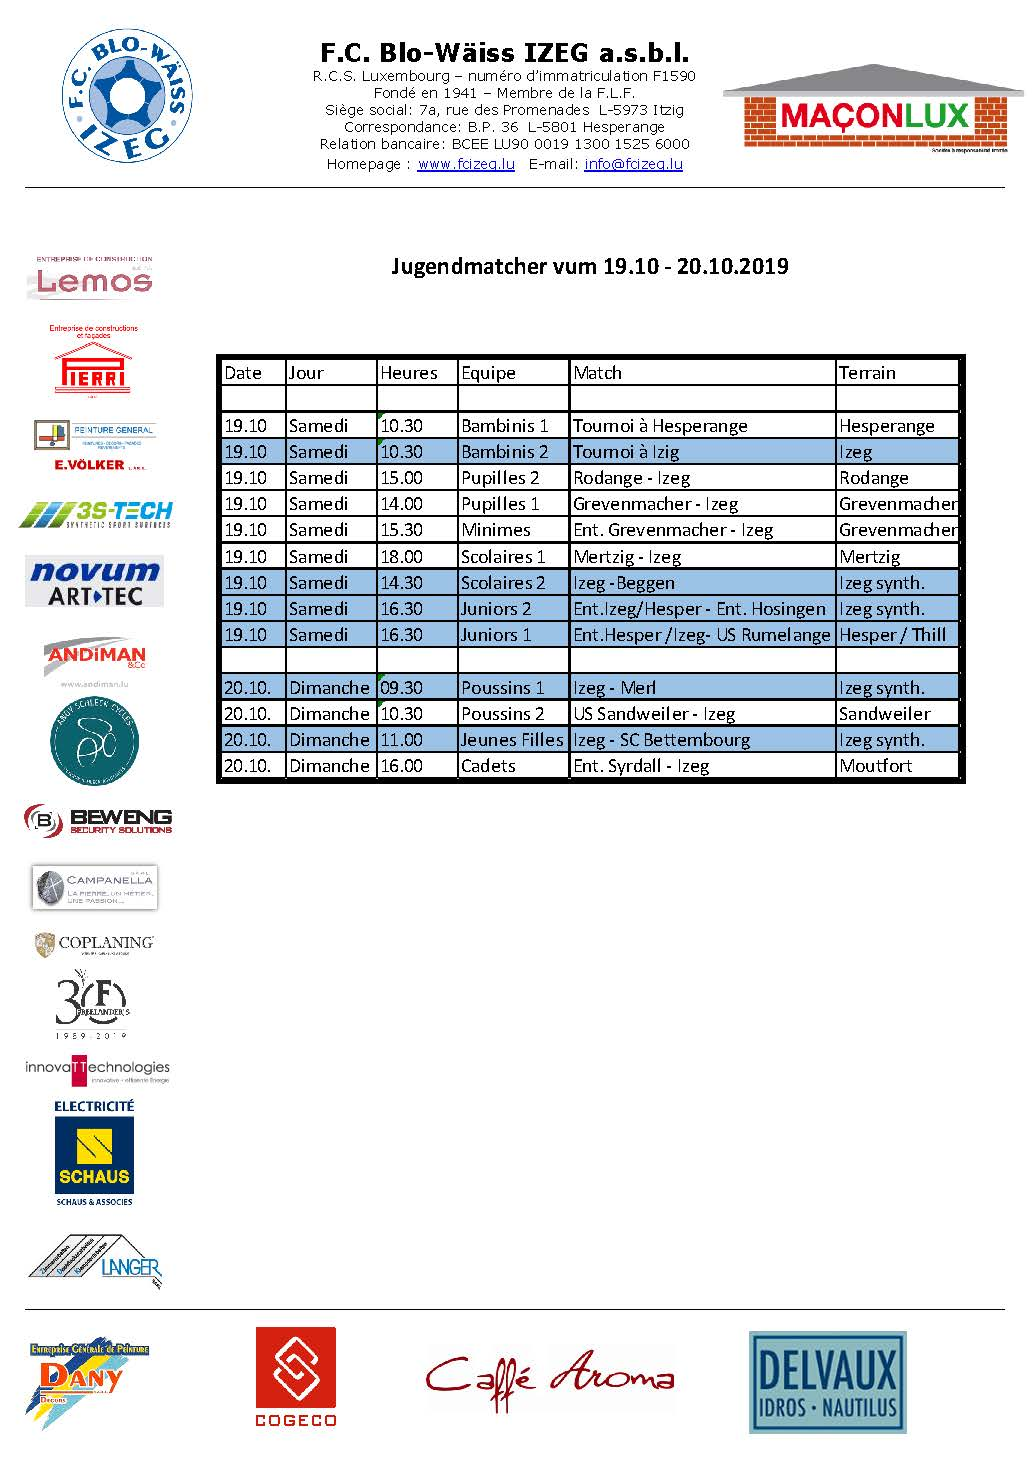 Jugendmatcher vum Weekend 19. an 20. Oktober